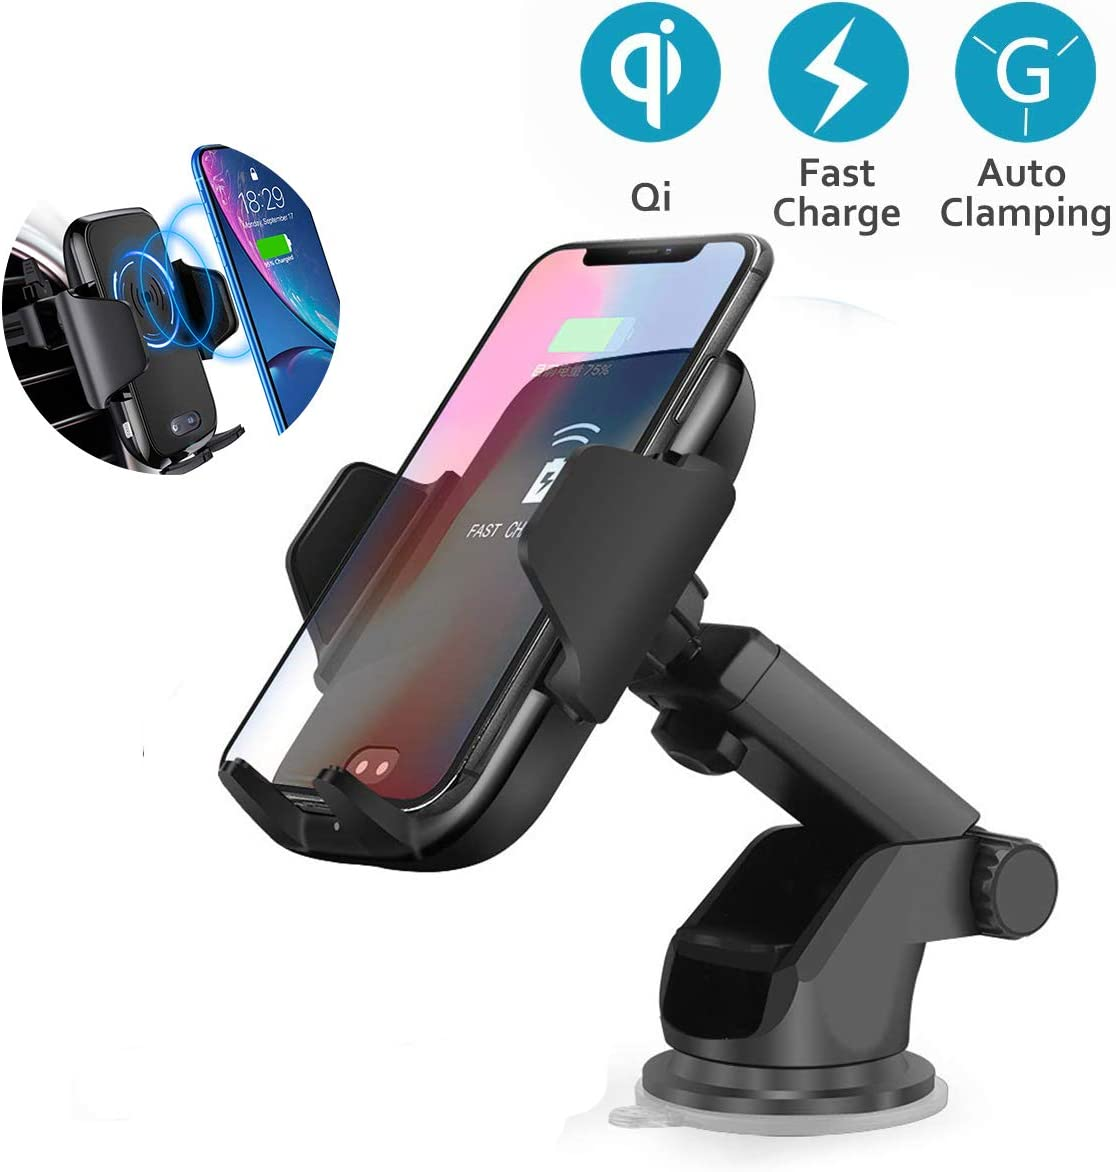 Sidiyang Wireless Car Fast Charger,IR Infrared Sensing Auto Clamping 10W//7.5W,Qi Car Receiver Mount Holder Compatible for iPhone XS//Max//XR//X//8Samsung Galaxy S8//S8 Plus//S9//S9 Plus Other QI Devices